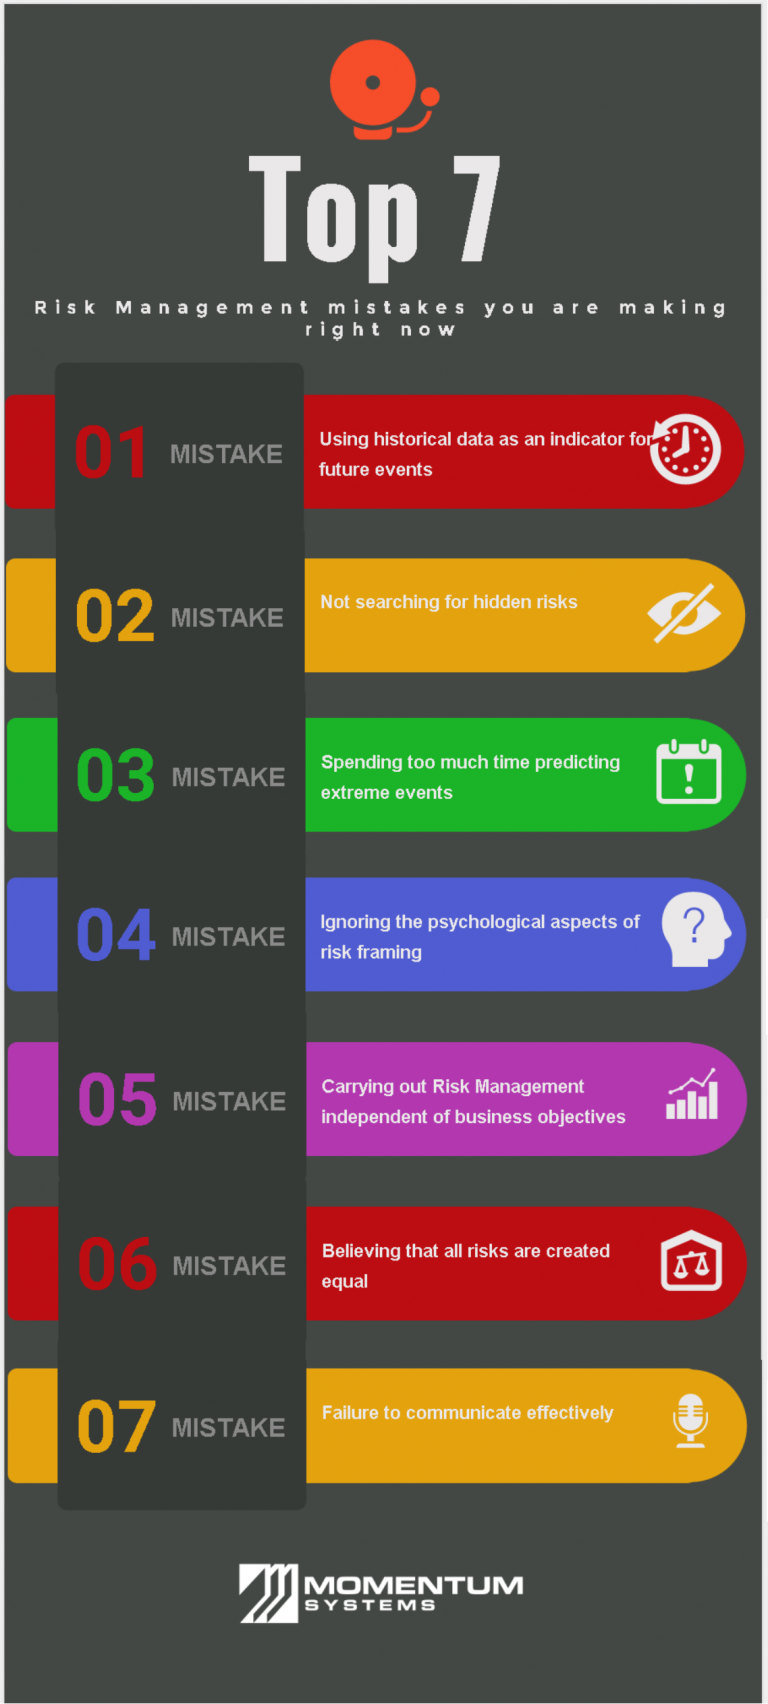 7 Risk Management mistakes you are making right now